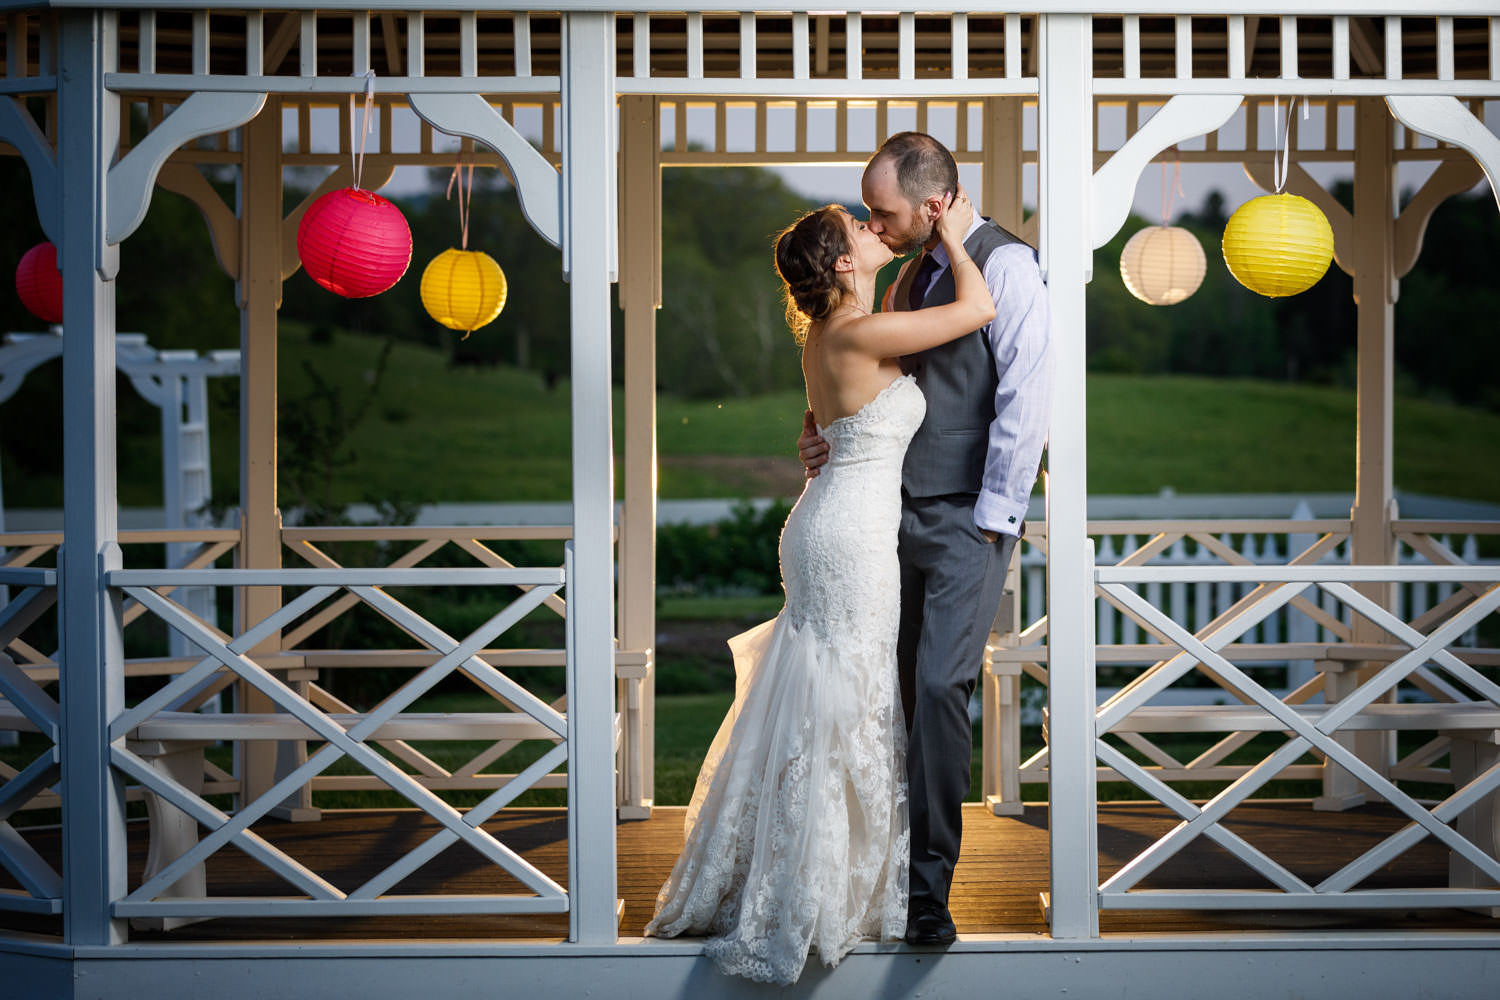 Couple Kissing at Salem Cross Inn Gazebo decorated with Chinese lantern